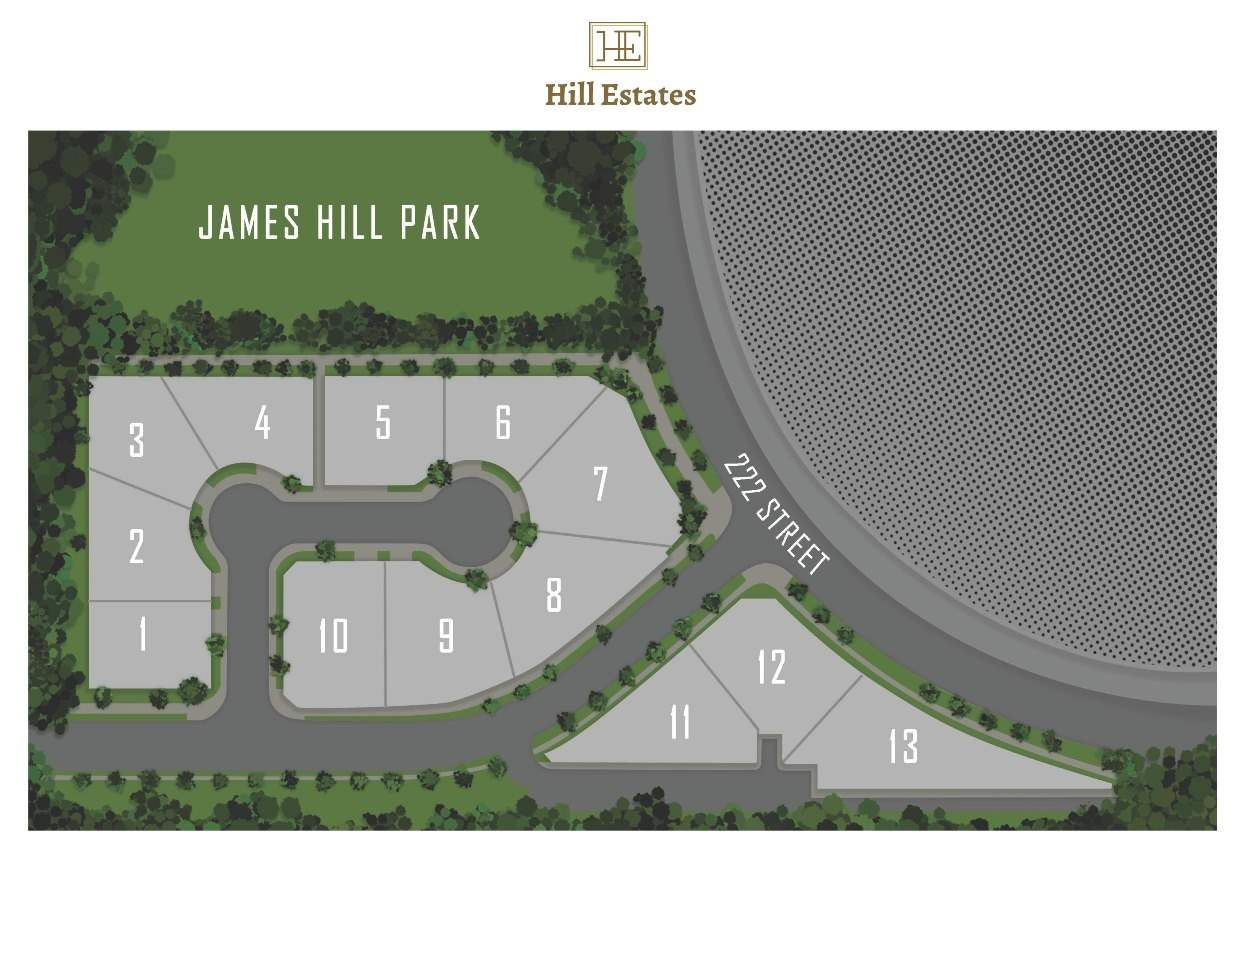 """Main Photo: Lot 2 4467 222 Street in Langley: Murrayville Land for sale in """"Hill Estates"""" : MLS®# R2553787"""